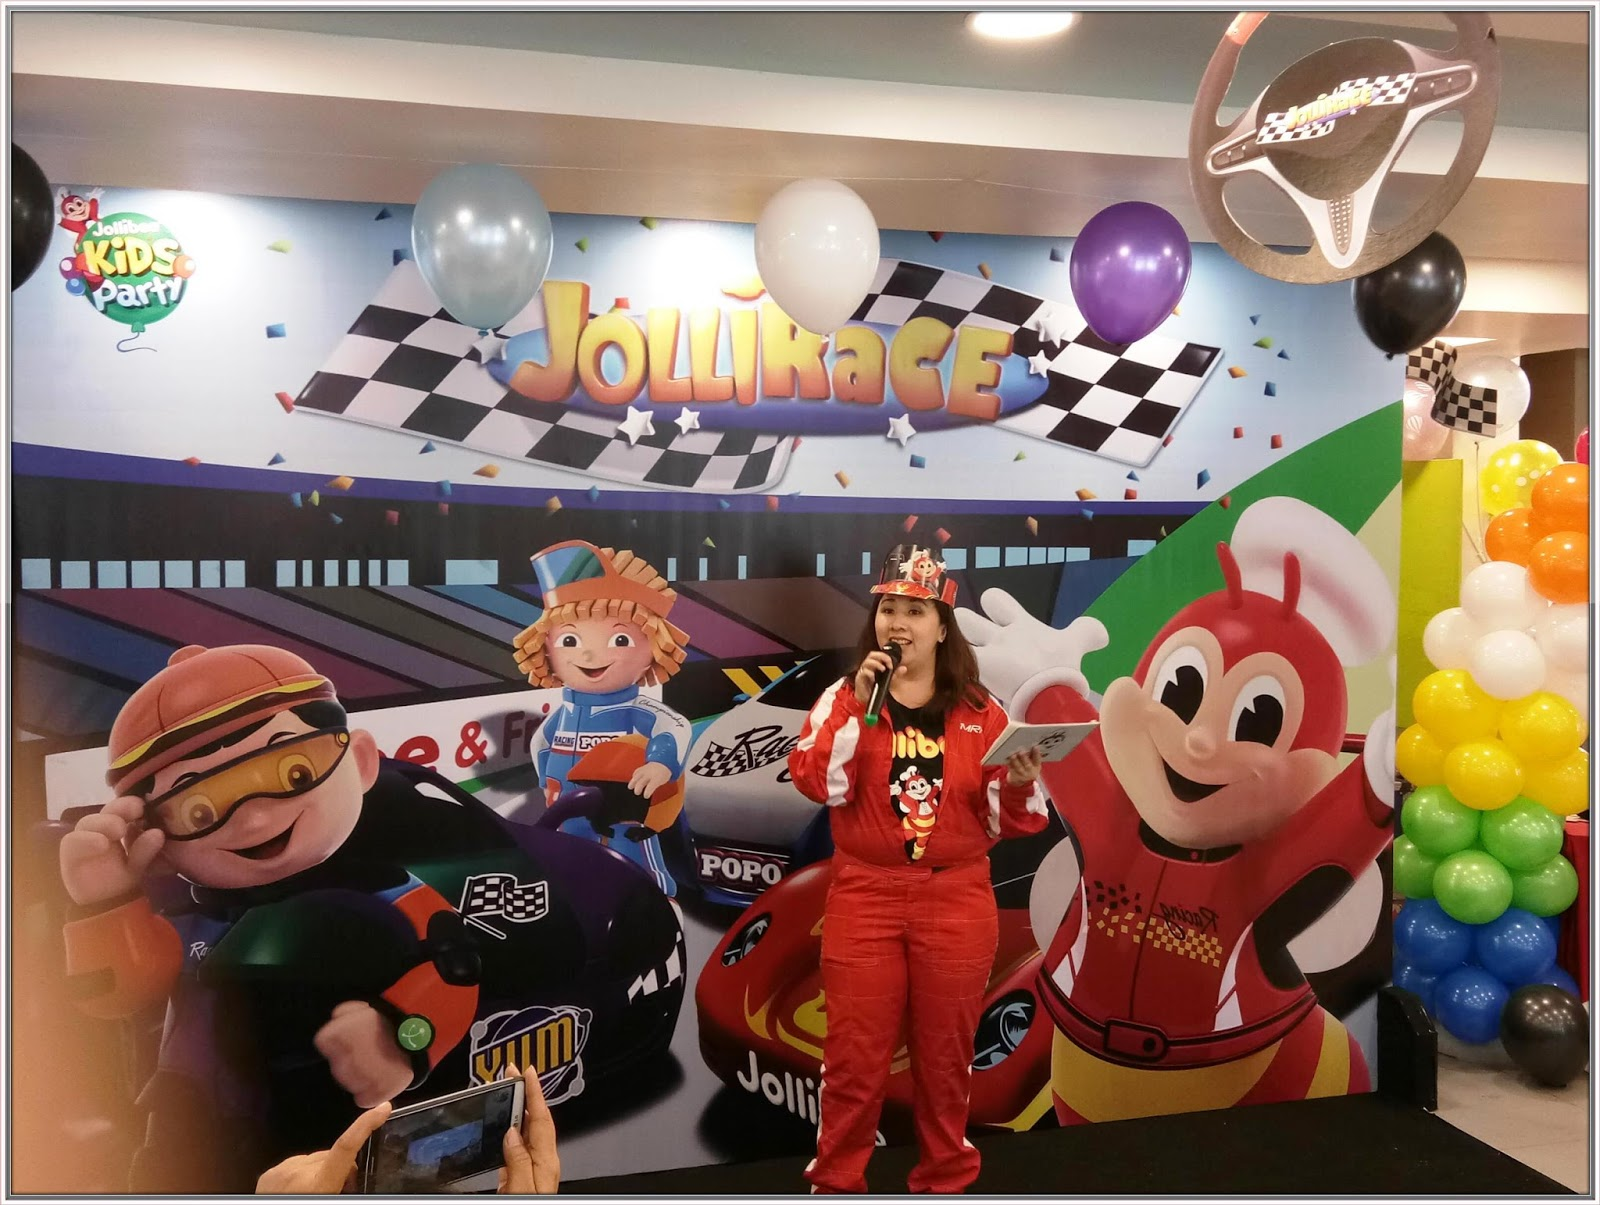 Jollibees new party theme jollirace my little world by mommy happy birthday to all march birthday celebrants stopboris Images